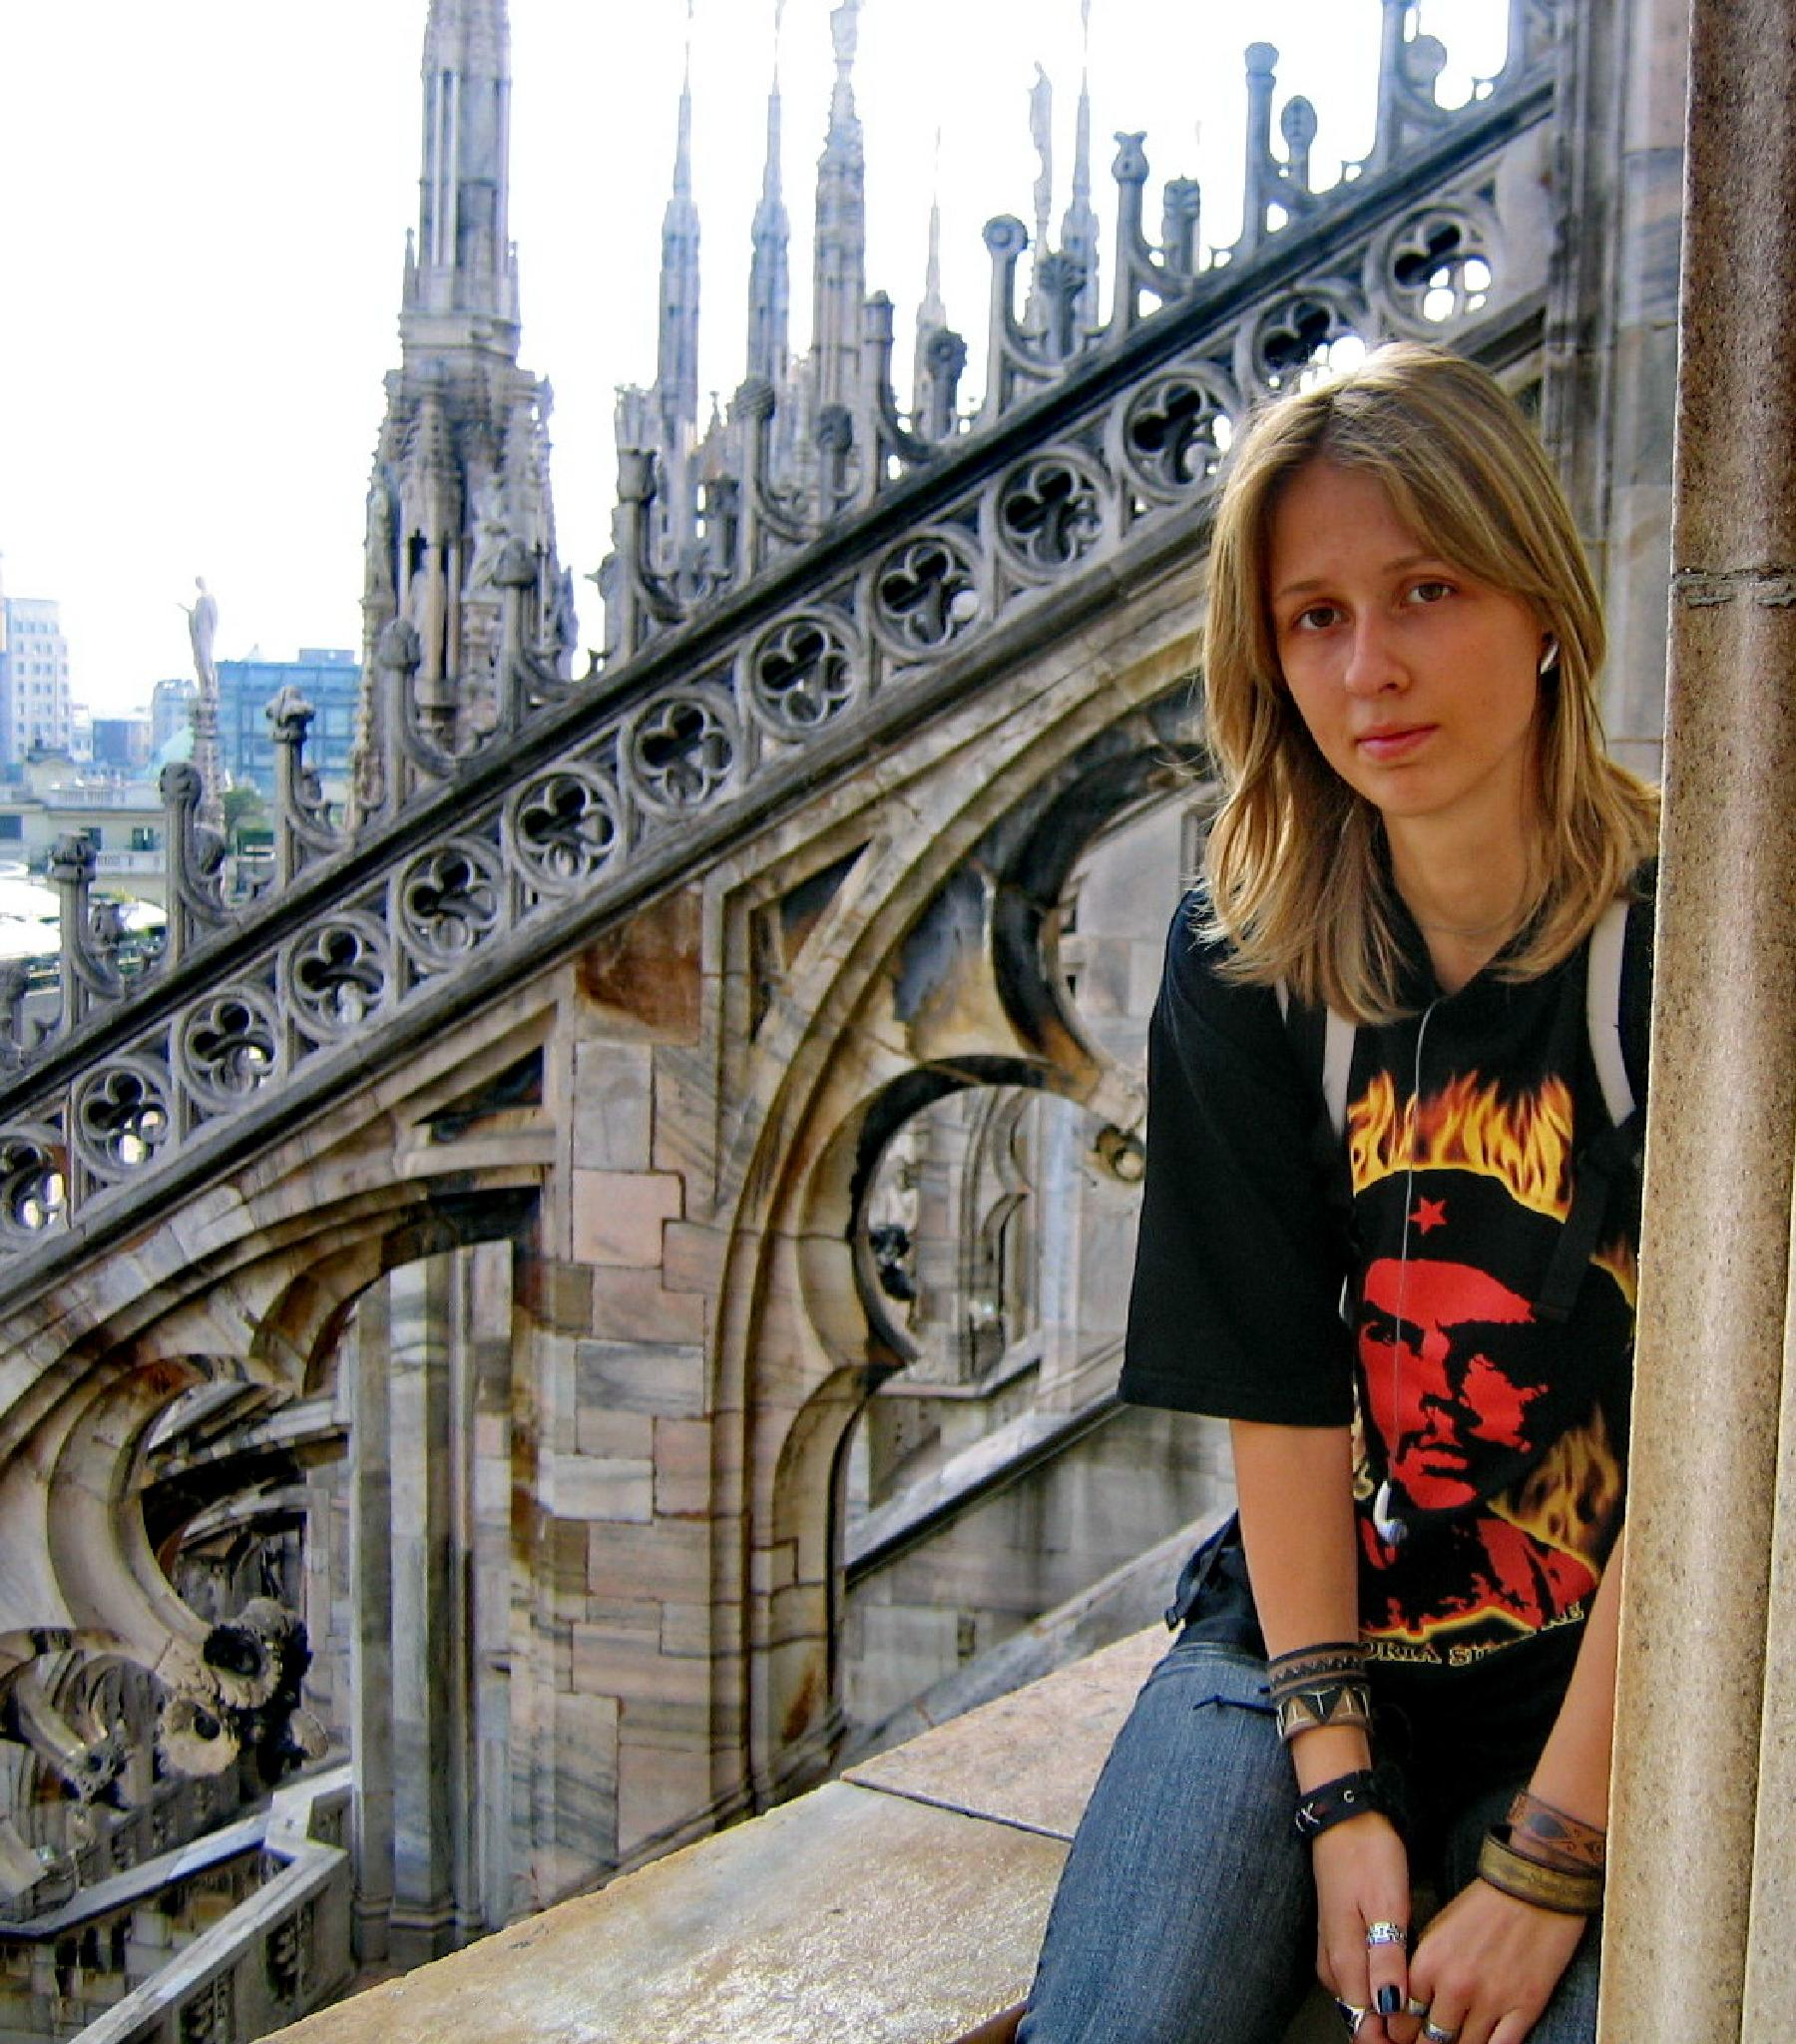 On the roof of the Dome of Milan by Irina Carmen Brinza